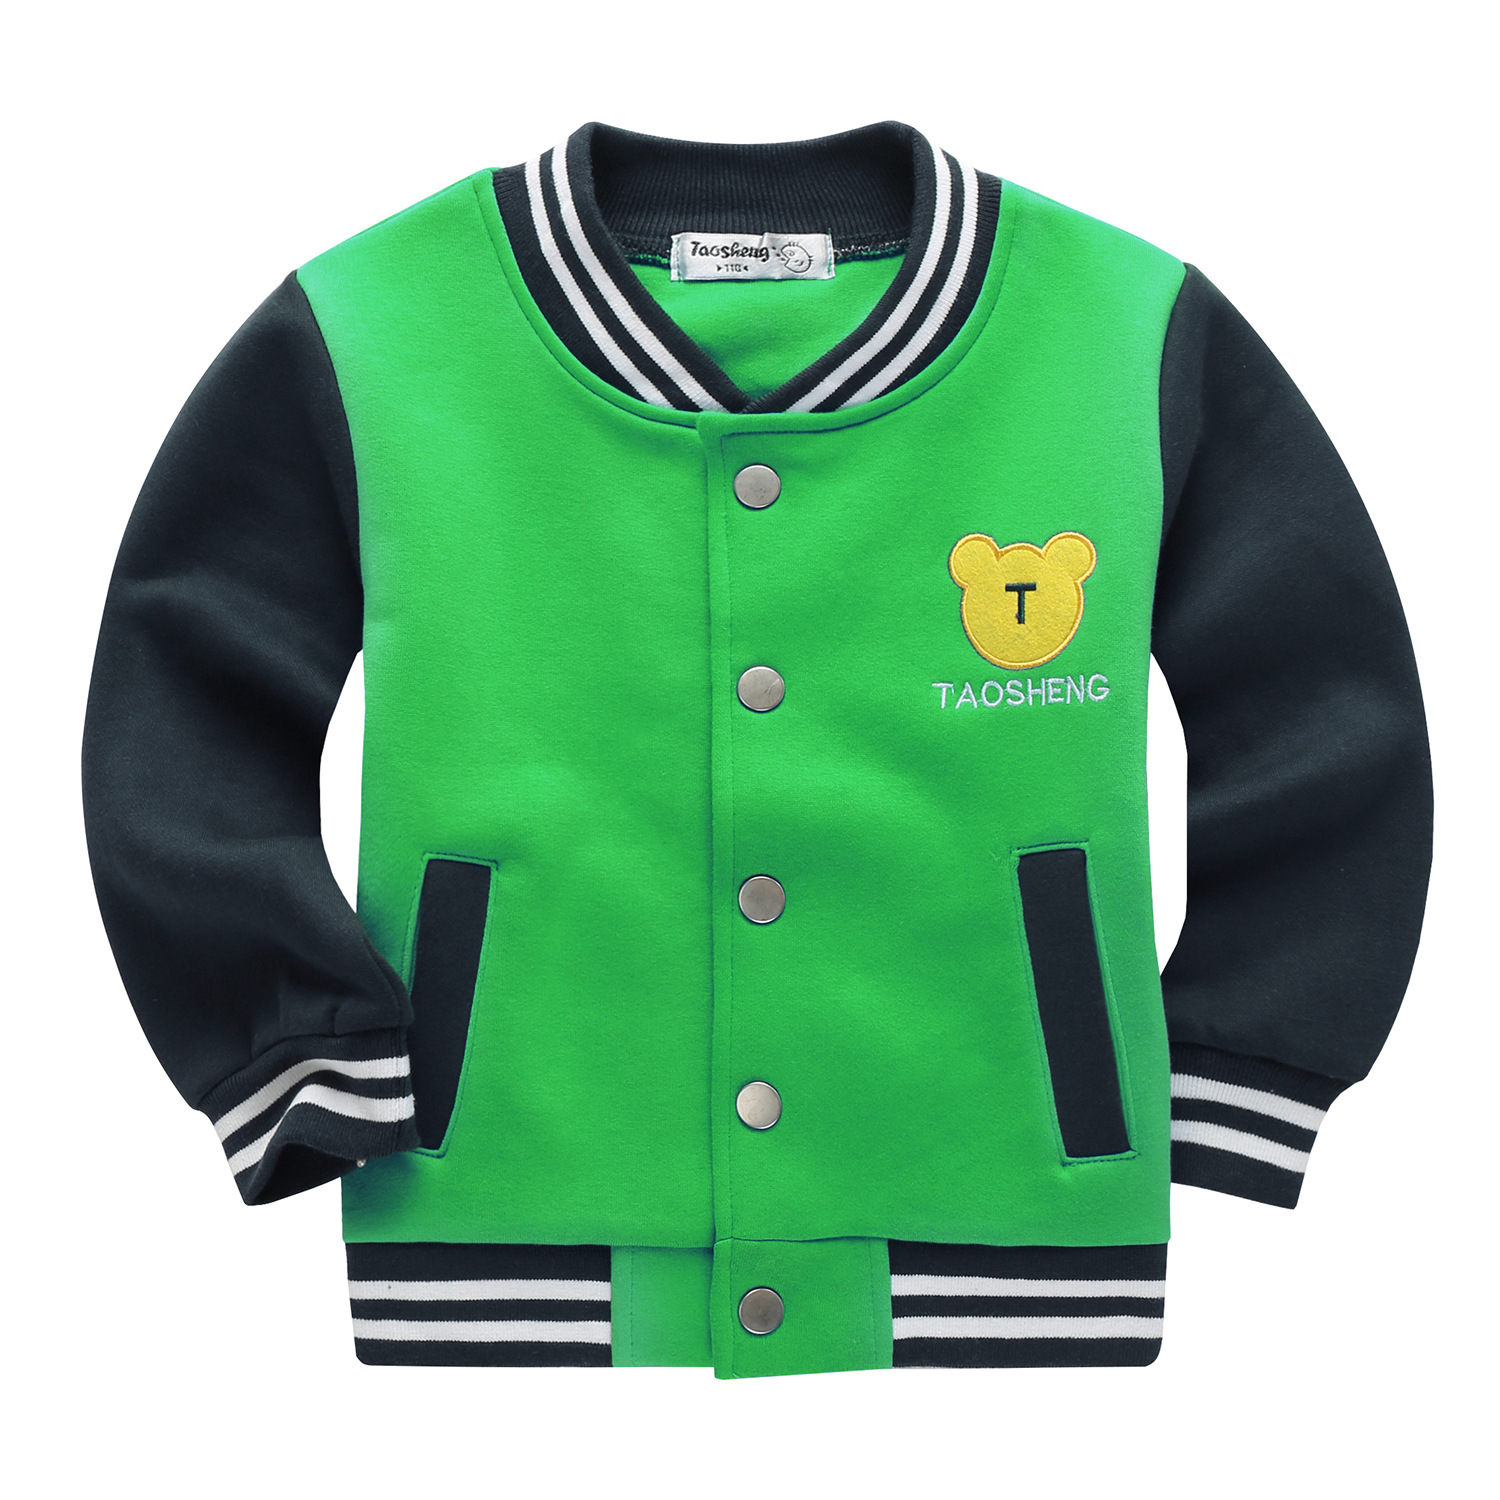 School Baseball Coats for Student Boys Girls Spring Jacket Children's Autumn Sports Basketball Running Clothes for Kids A73 5